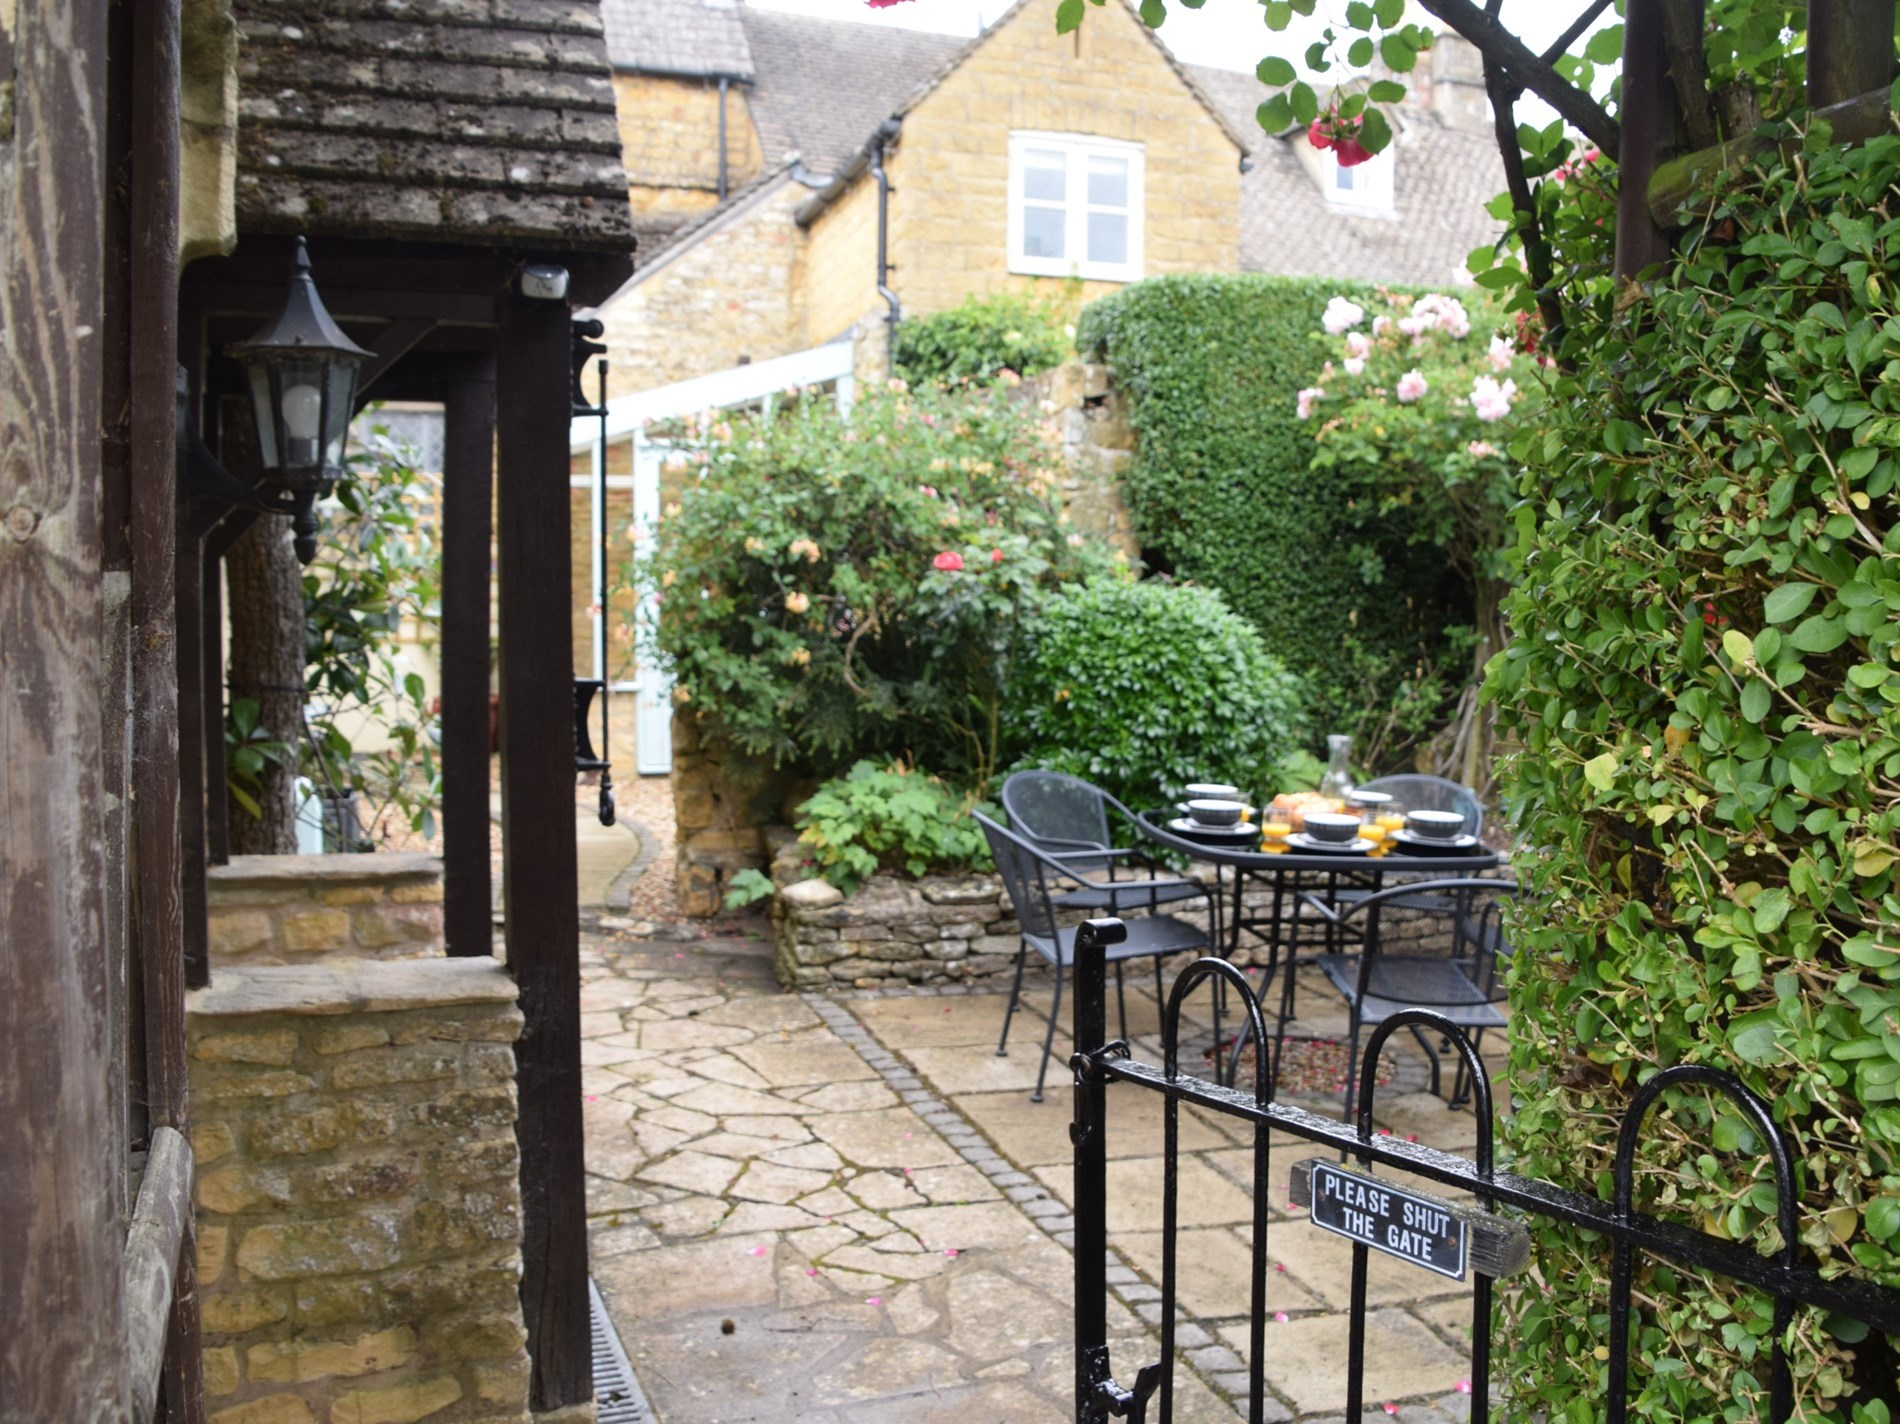 Private and enclosed courtyard area